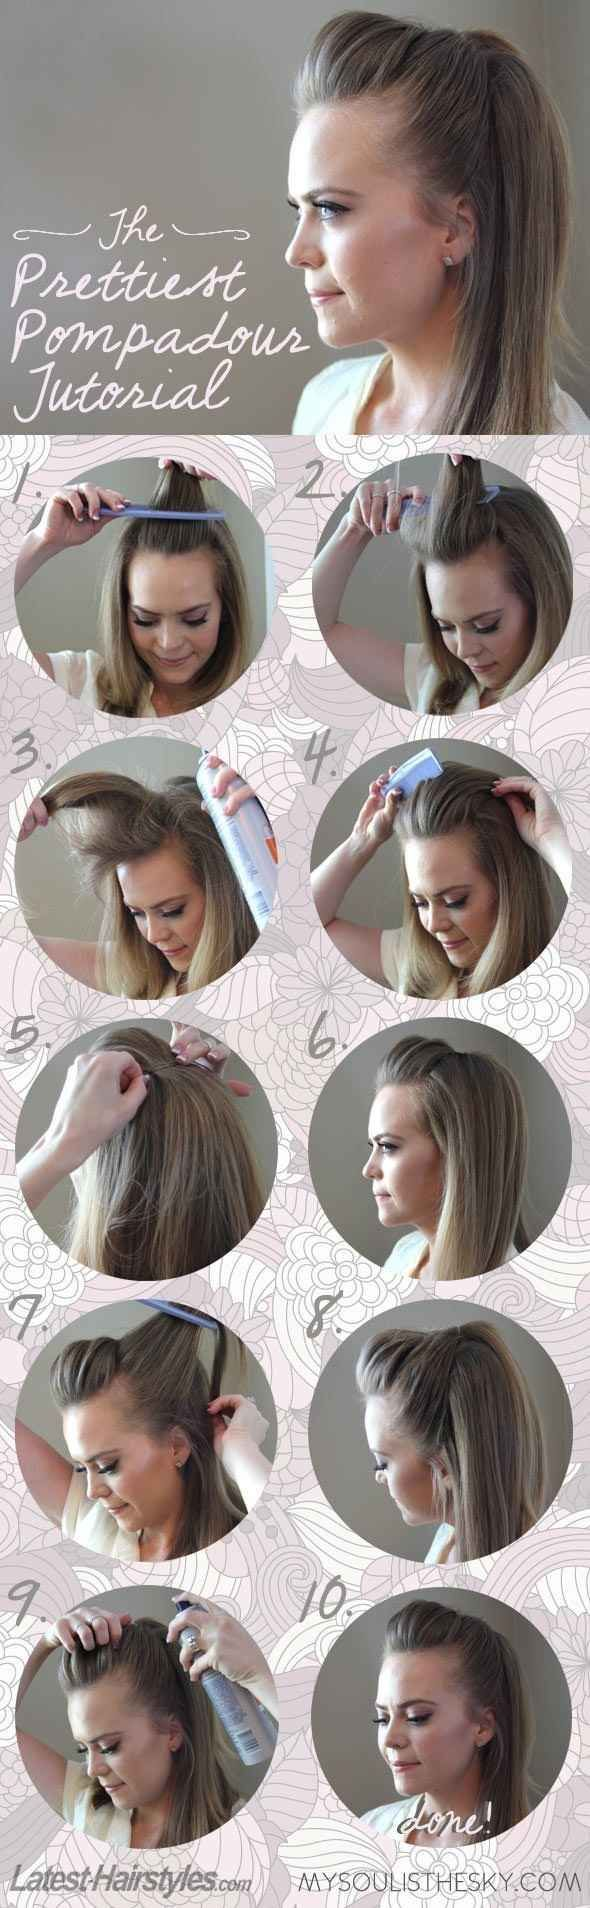 night club hairstyle8